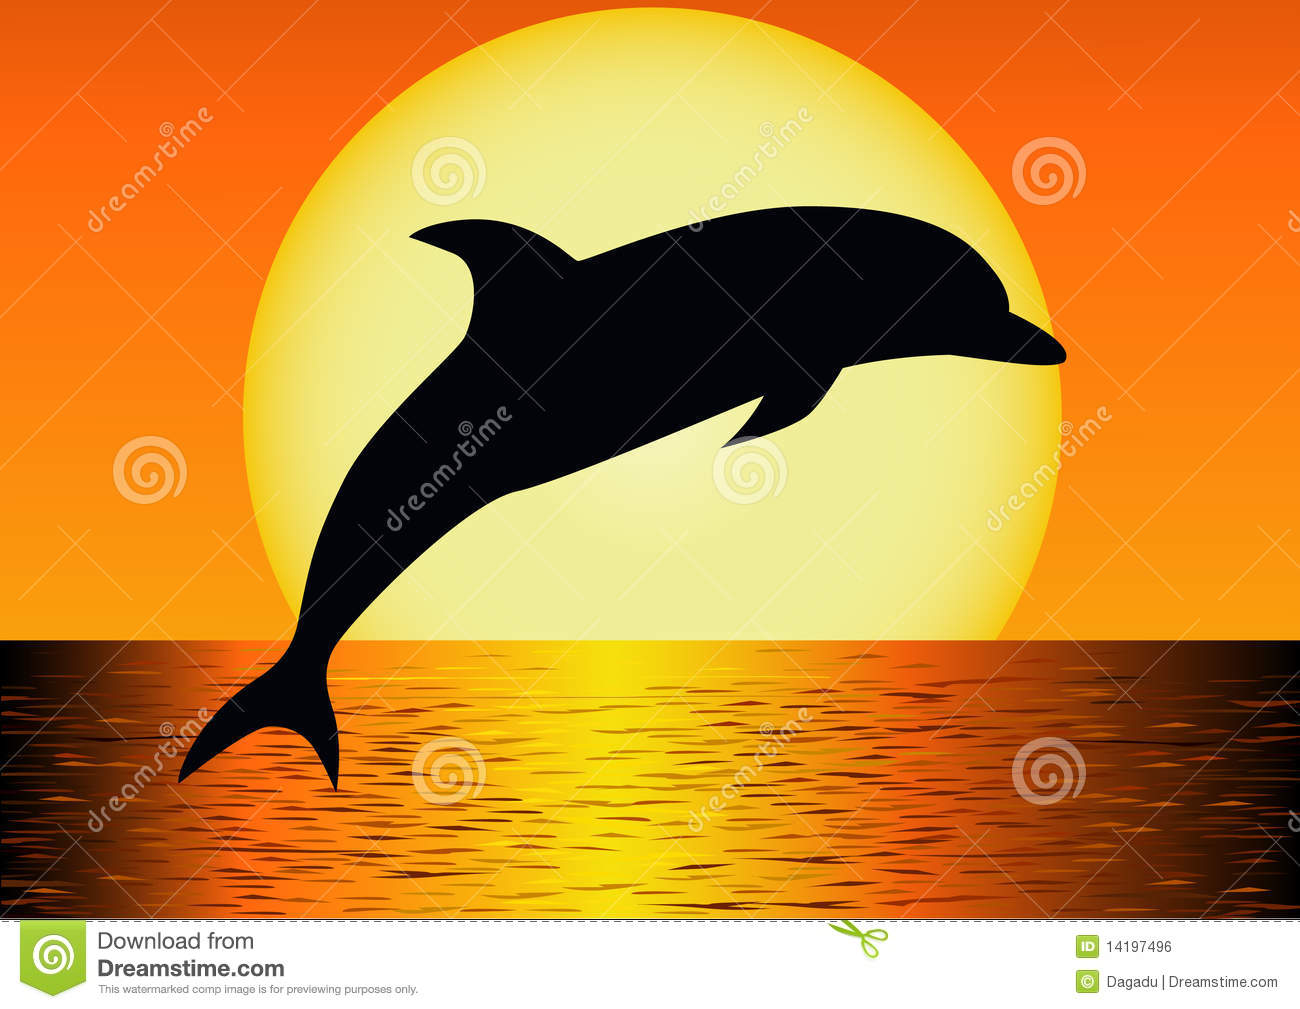 Dolphin Silhouette Royalty Free Stock Image Image 14197496